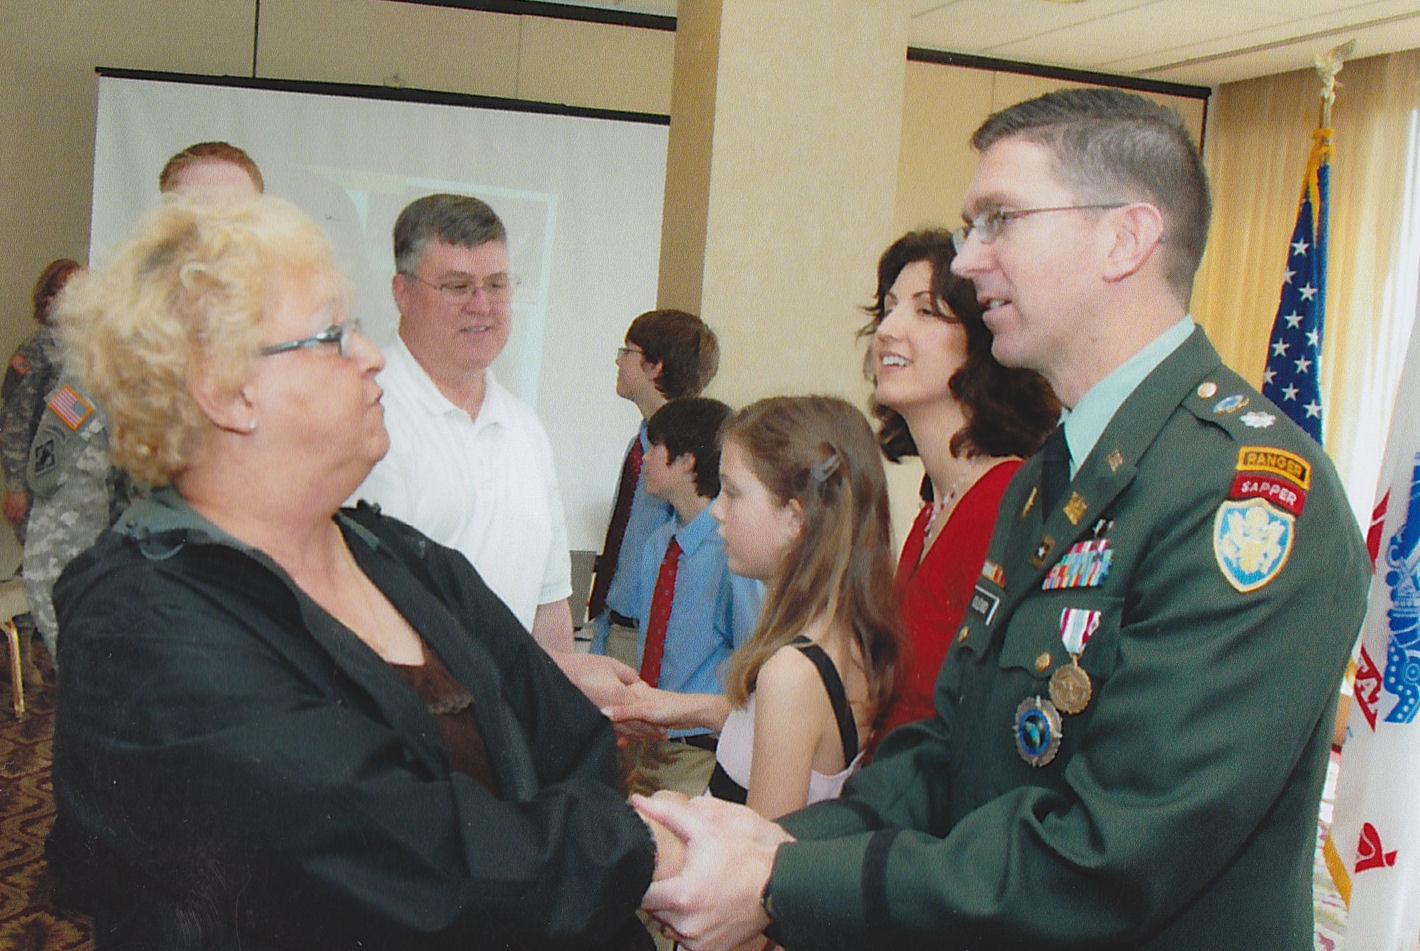 L-R Peggy Burkes, Dana Reeves and LTC Dan Olexio